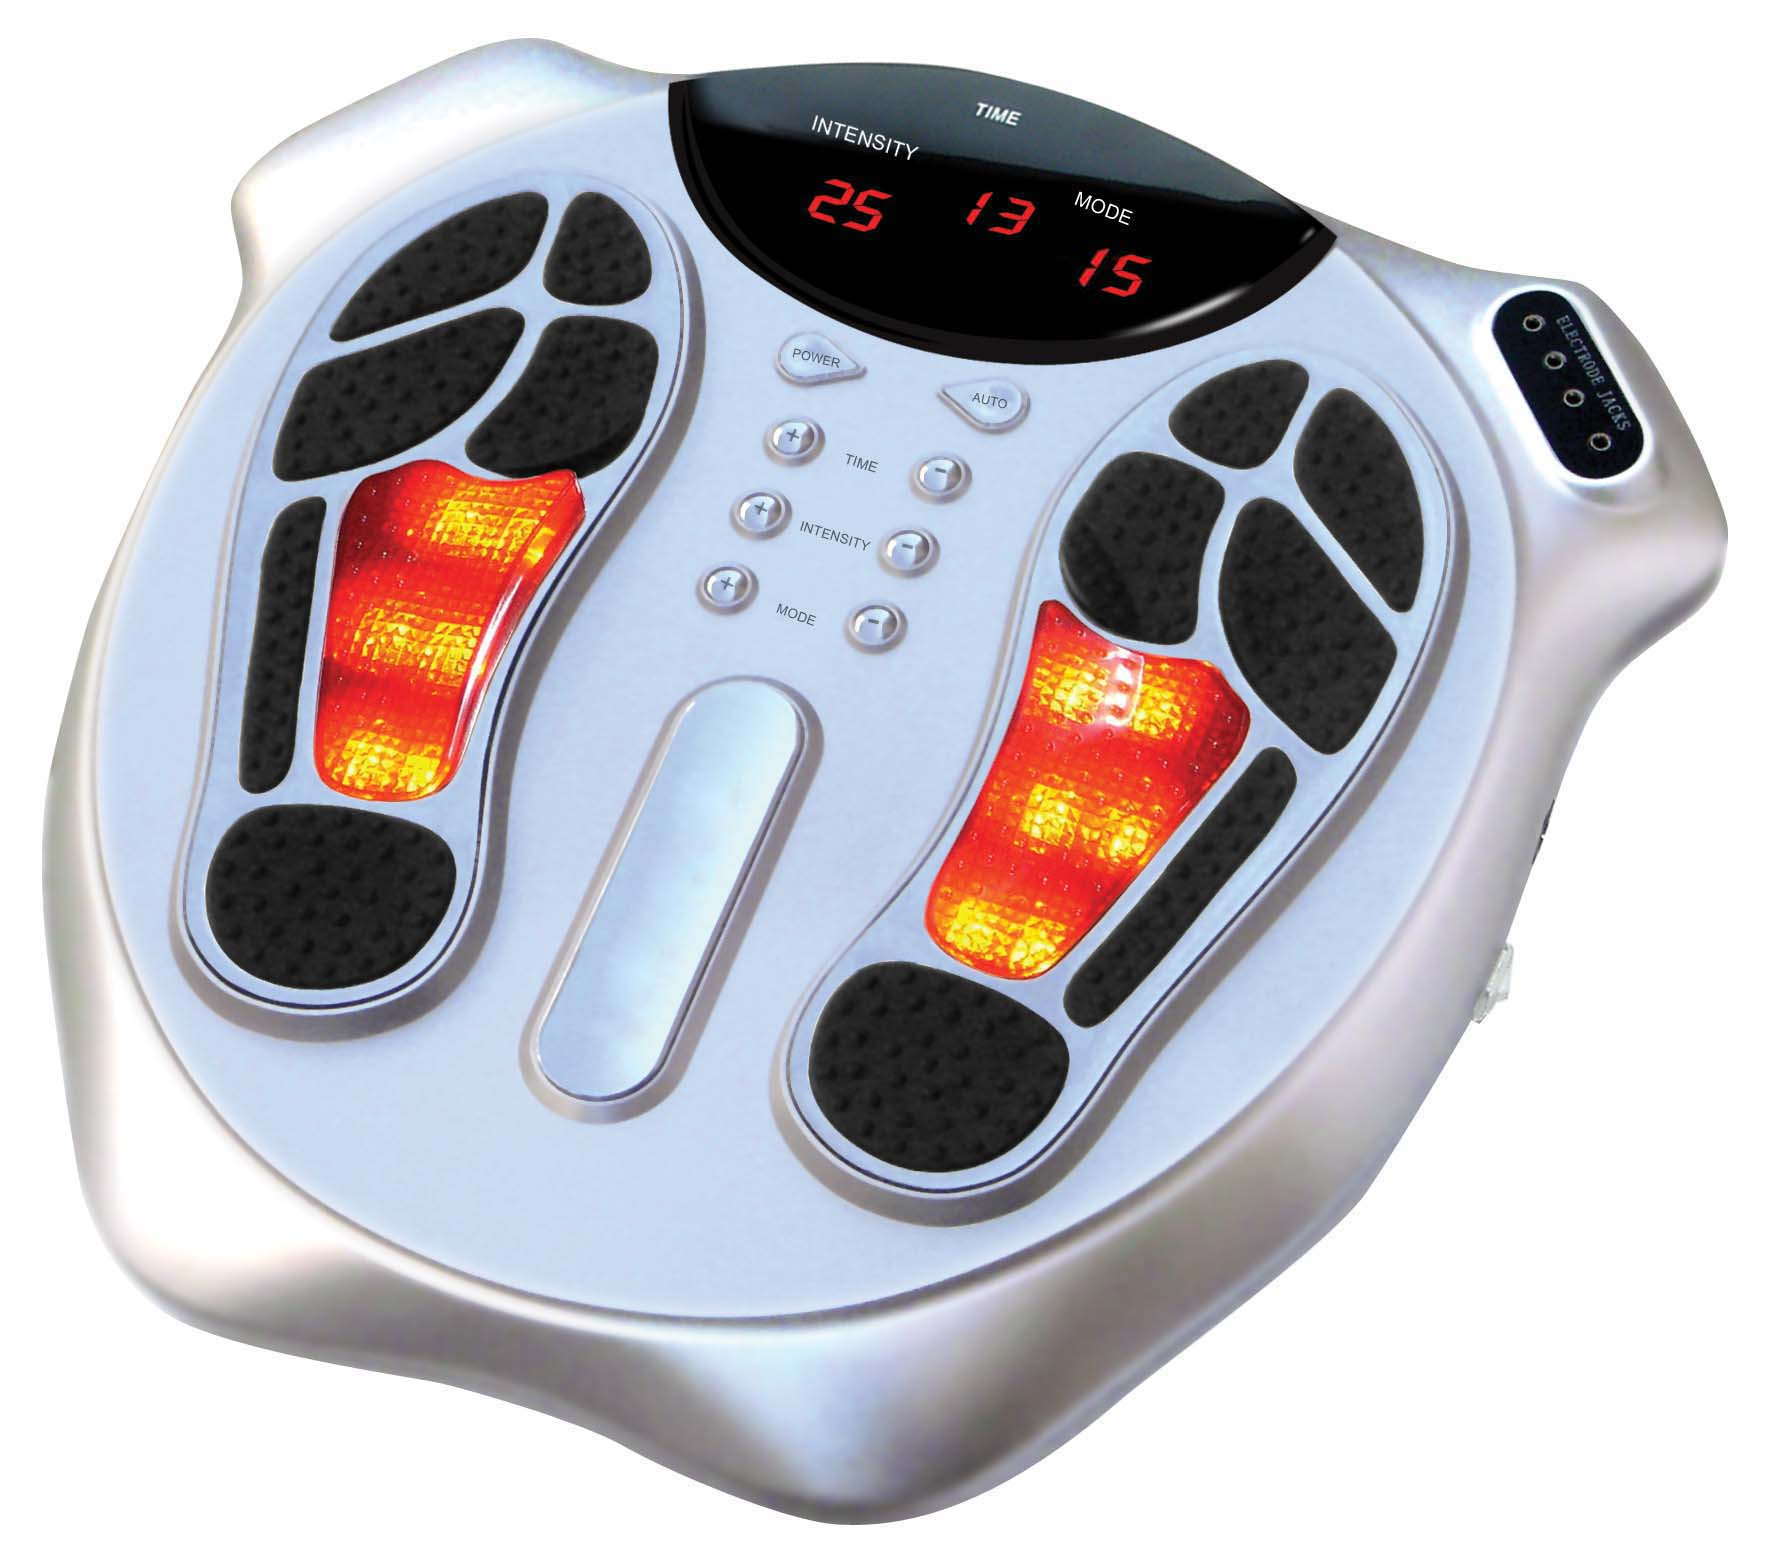 Foot booster foot massager for foot relax and relief ZJM-006CH with Infrared function